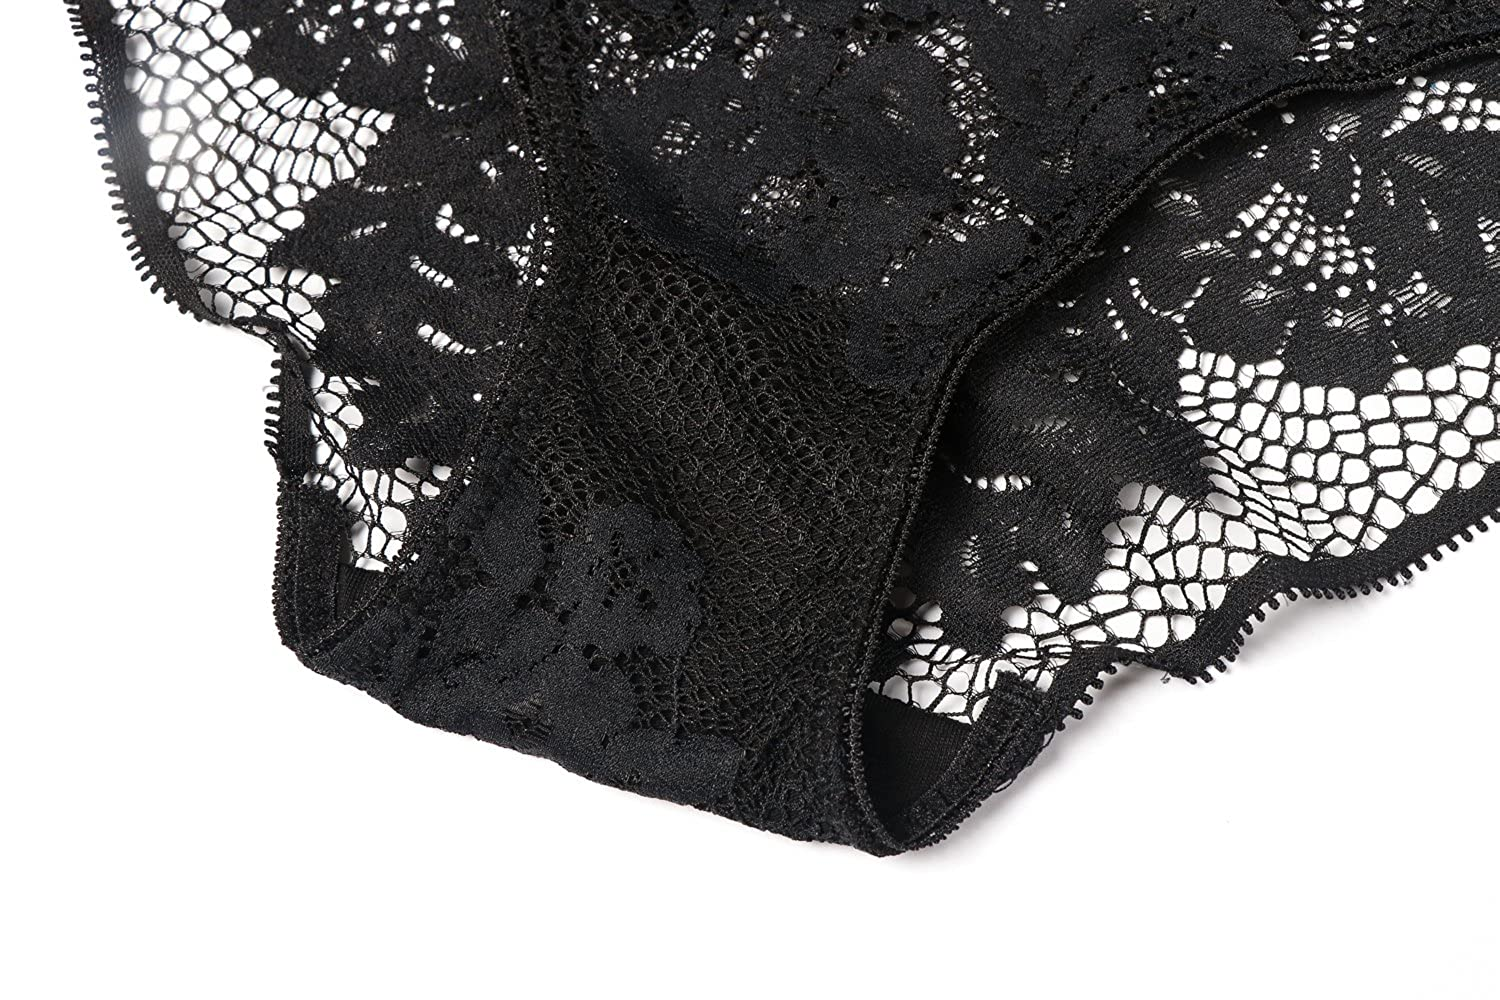 Bellismira unpadded mesh lace unlined bralette with embroidered